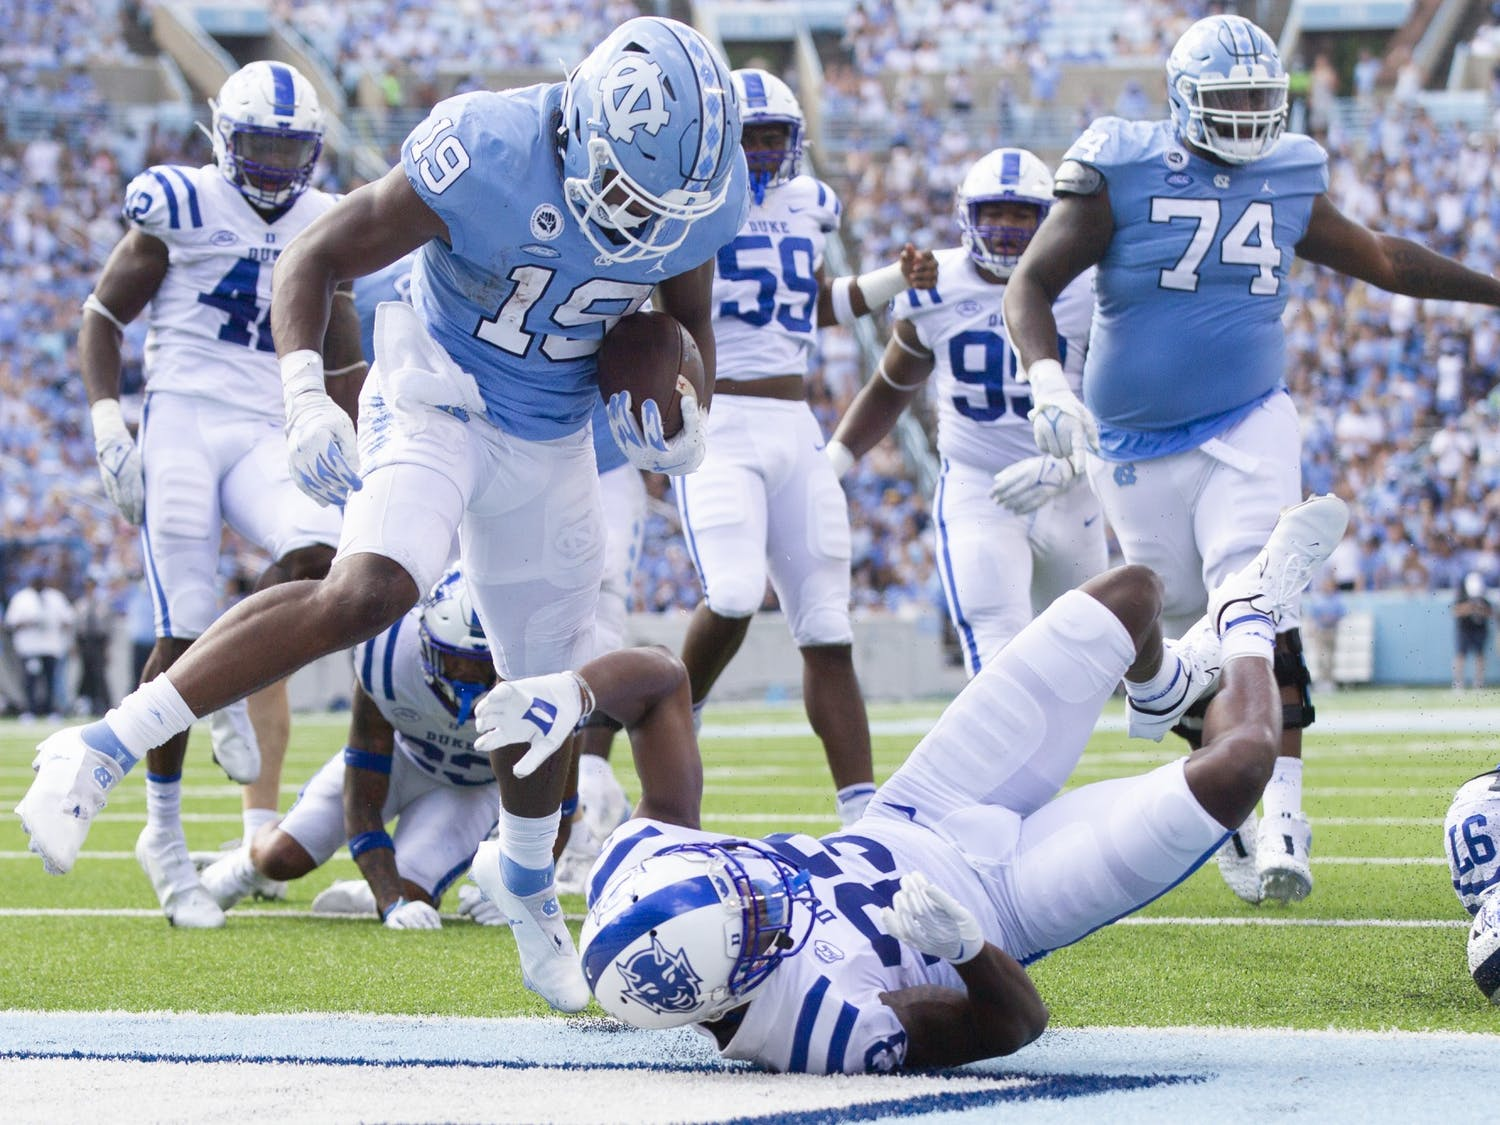 Graduate running back Ty Chandler (19) enters the end zone and brings the Tar Heels lead over Duke to 31-7. The Tar Heels defeated Duke 38-7 in Kenan Memorial Stadium on Oct. 2, 2021.